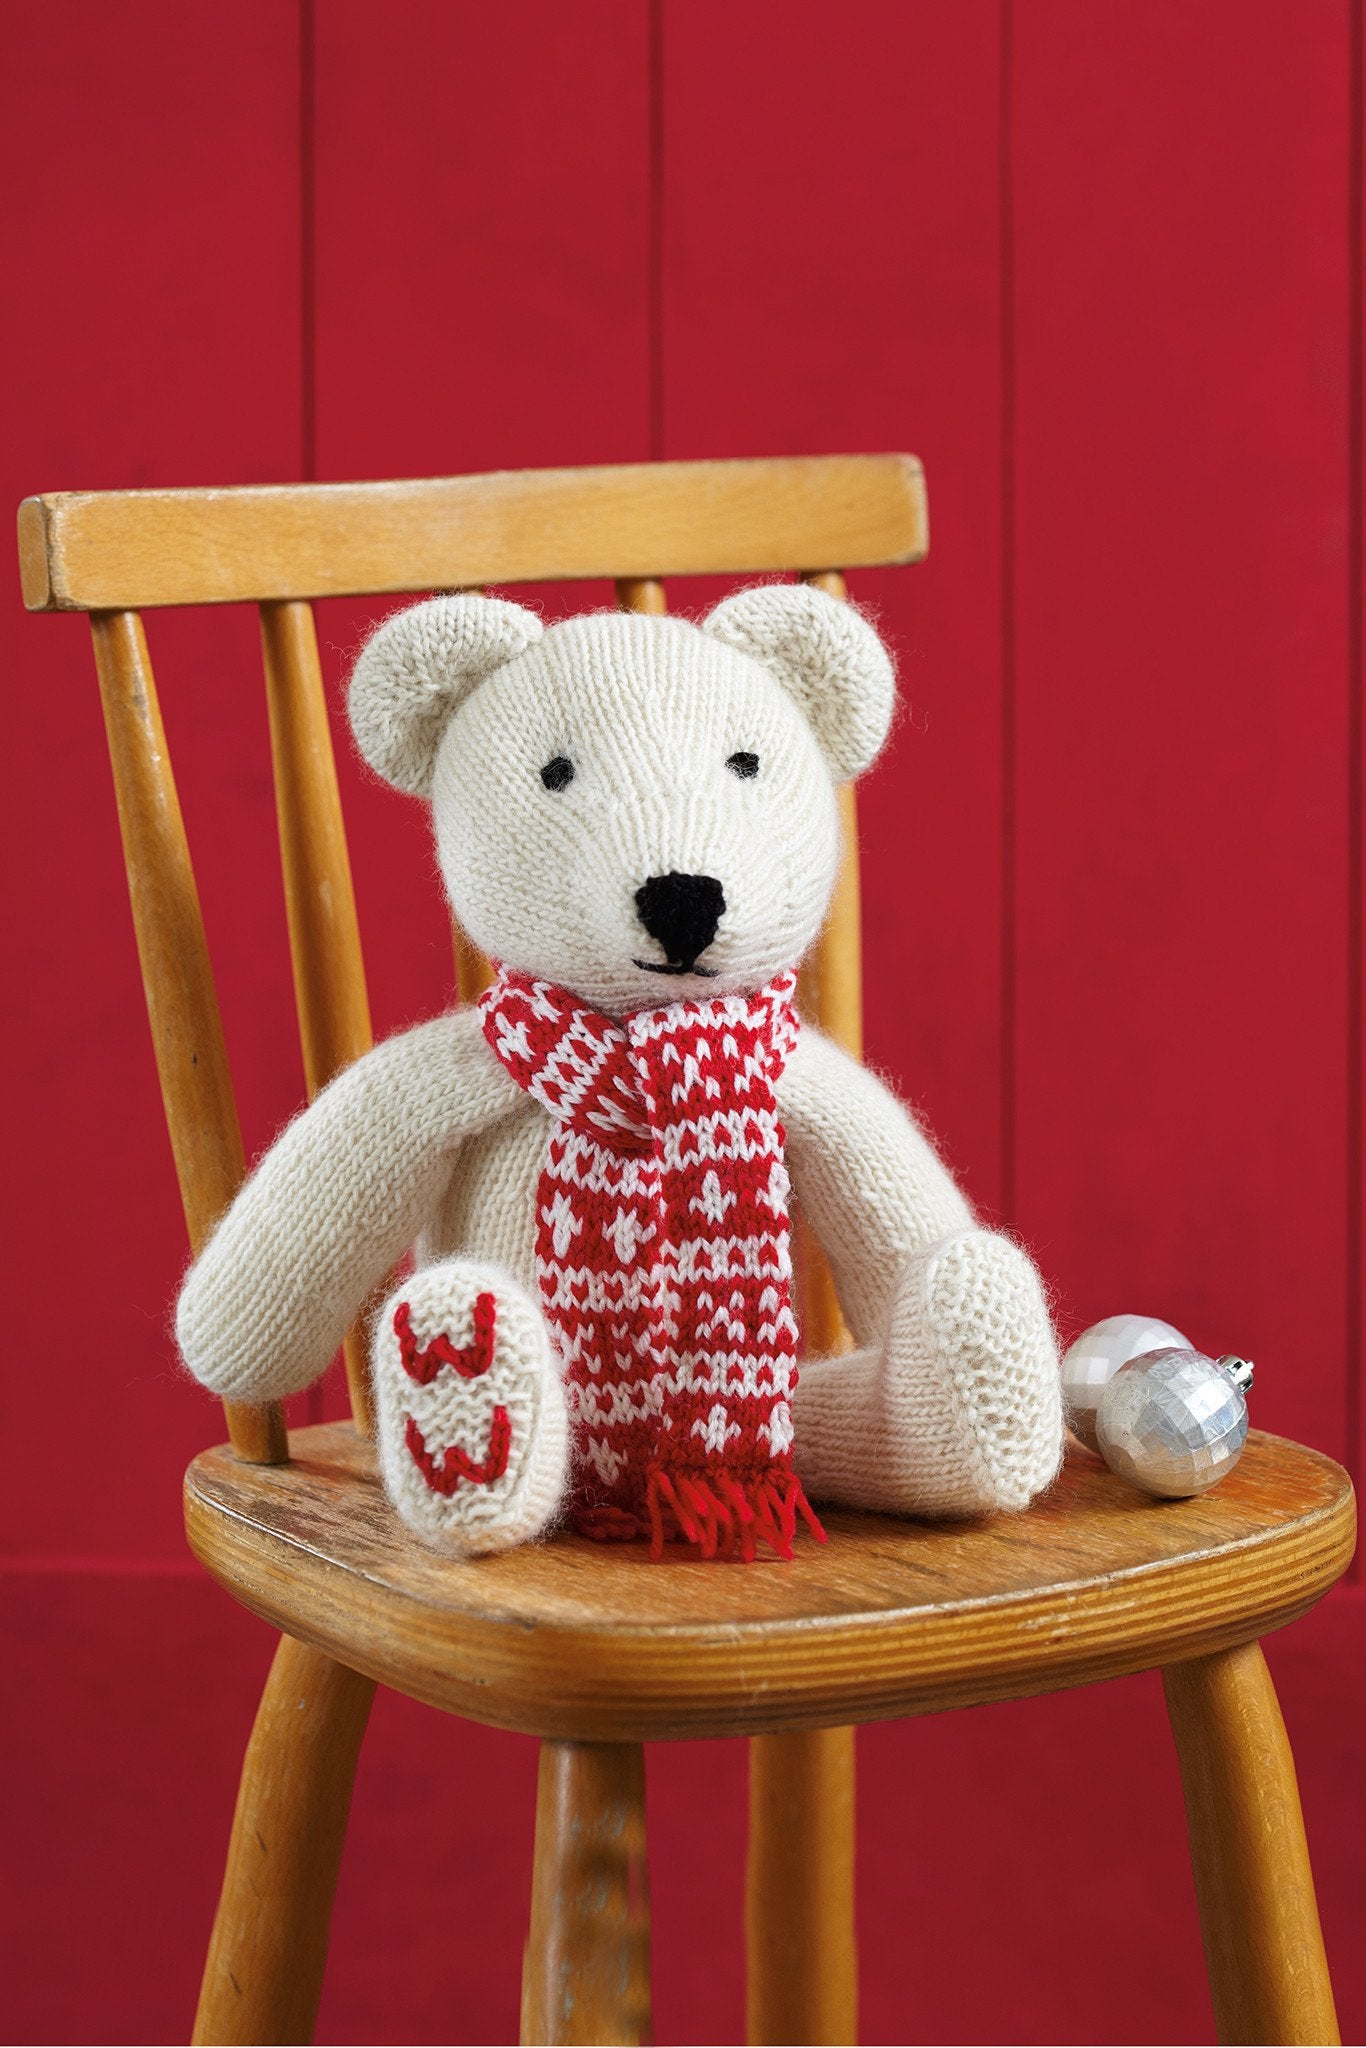 Teddy Bear With Scarf Knitting Pattern – The Knitting Network